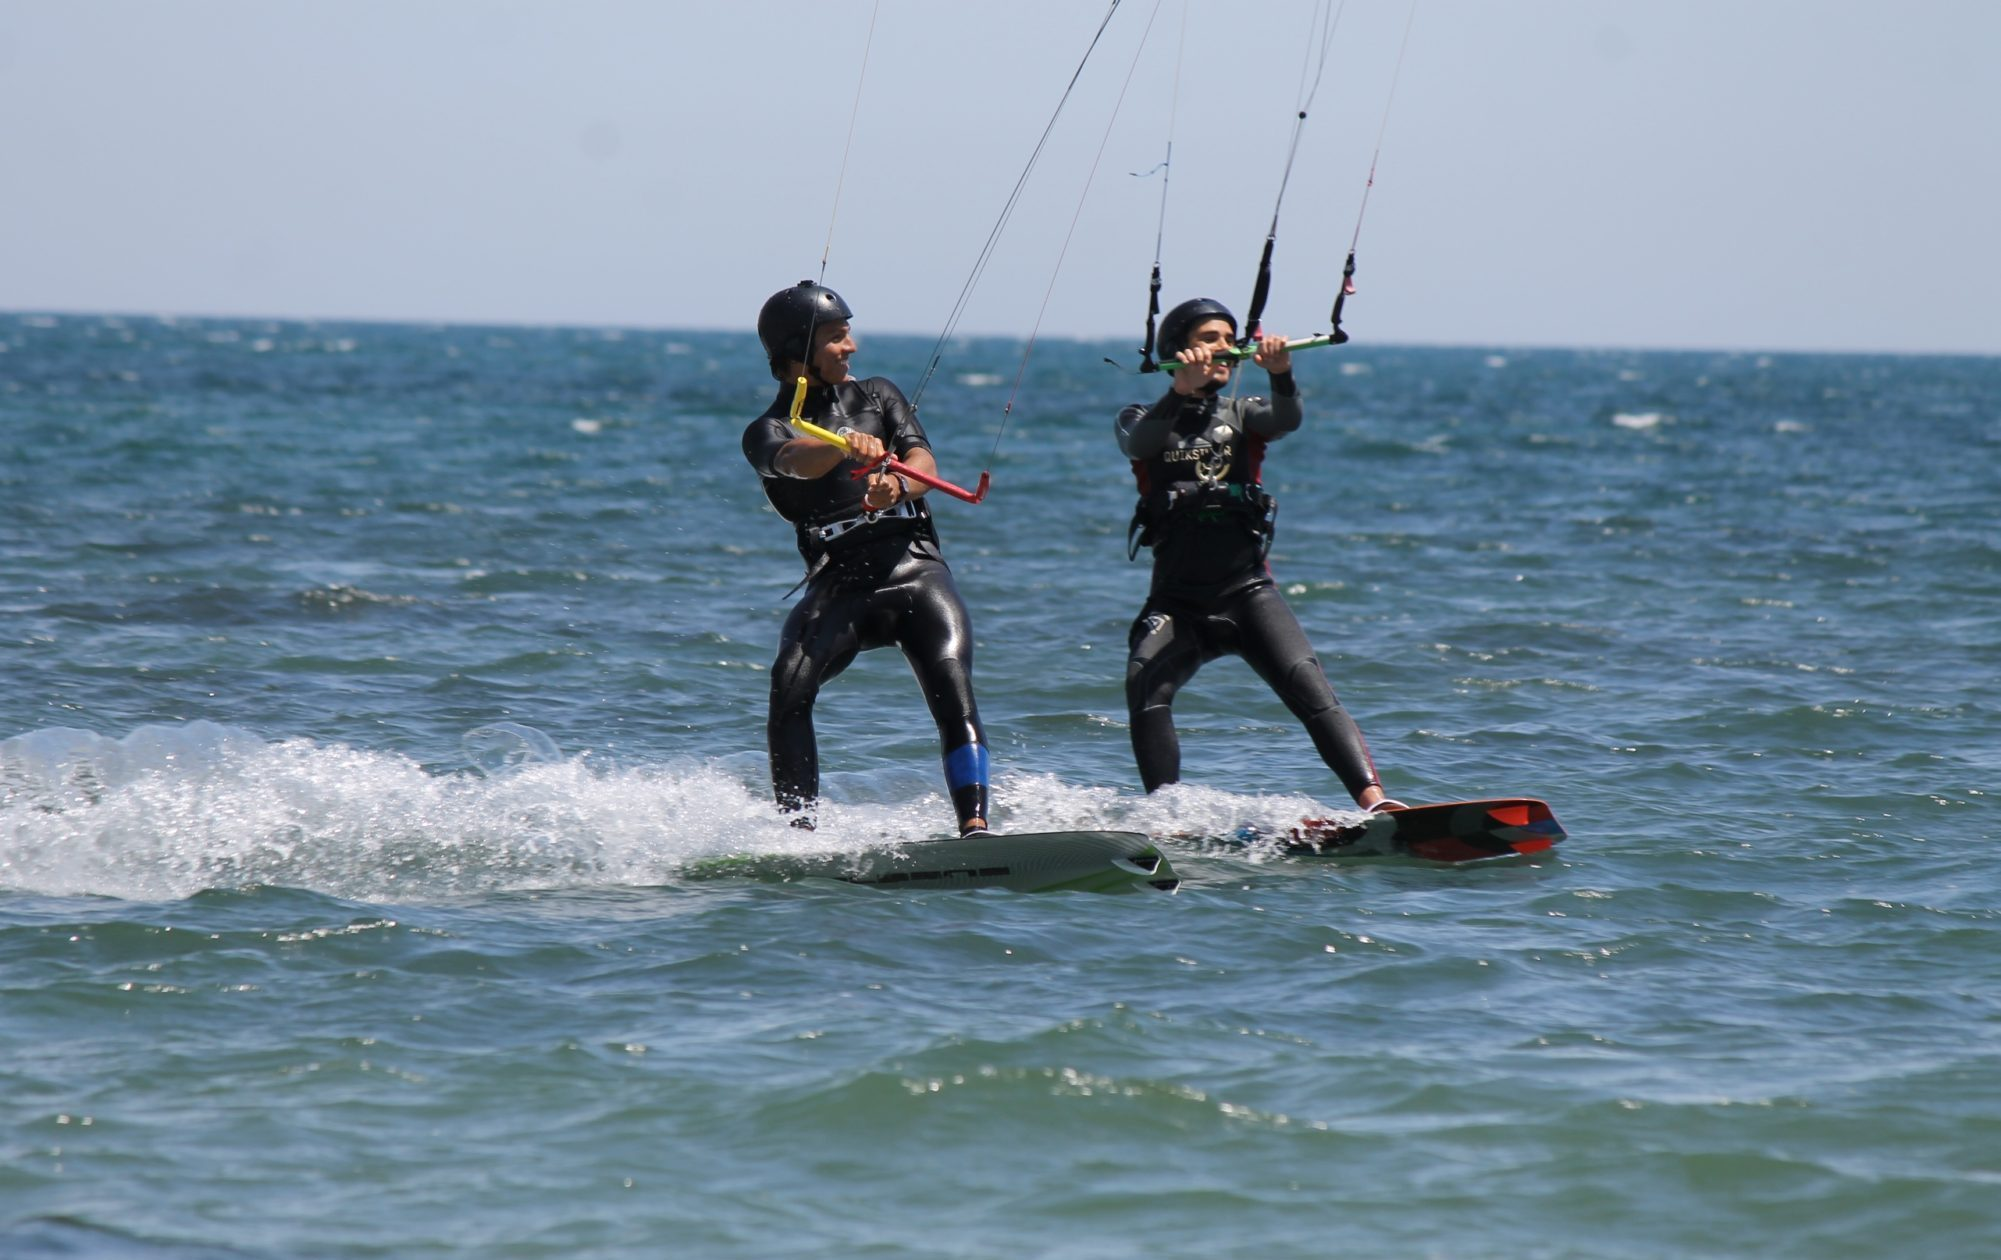 Intermediate Advanced Kitesurfing Lessons in Punta Trettu, Sardinia